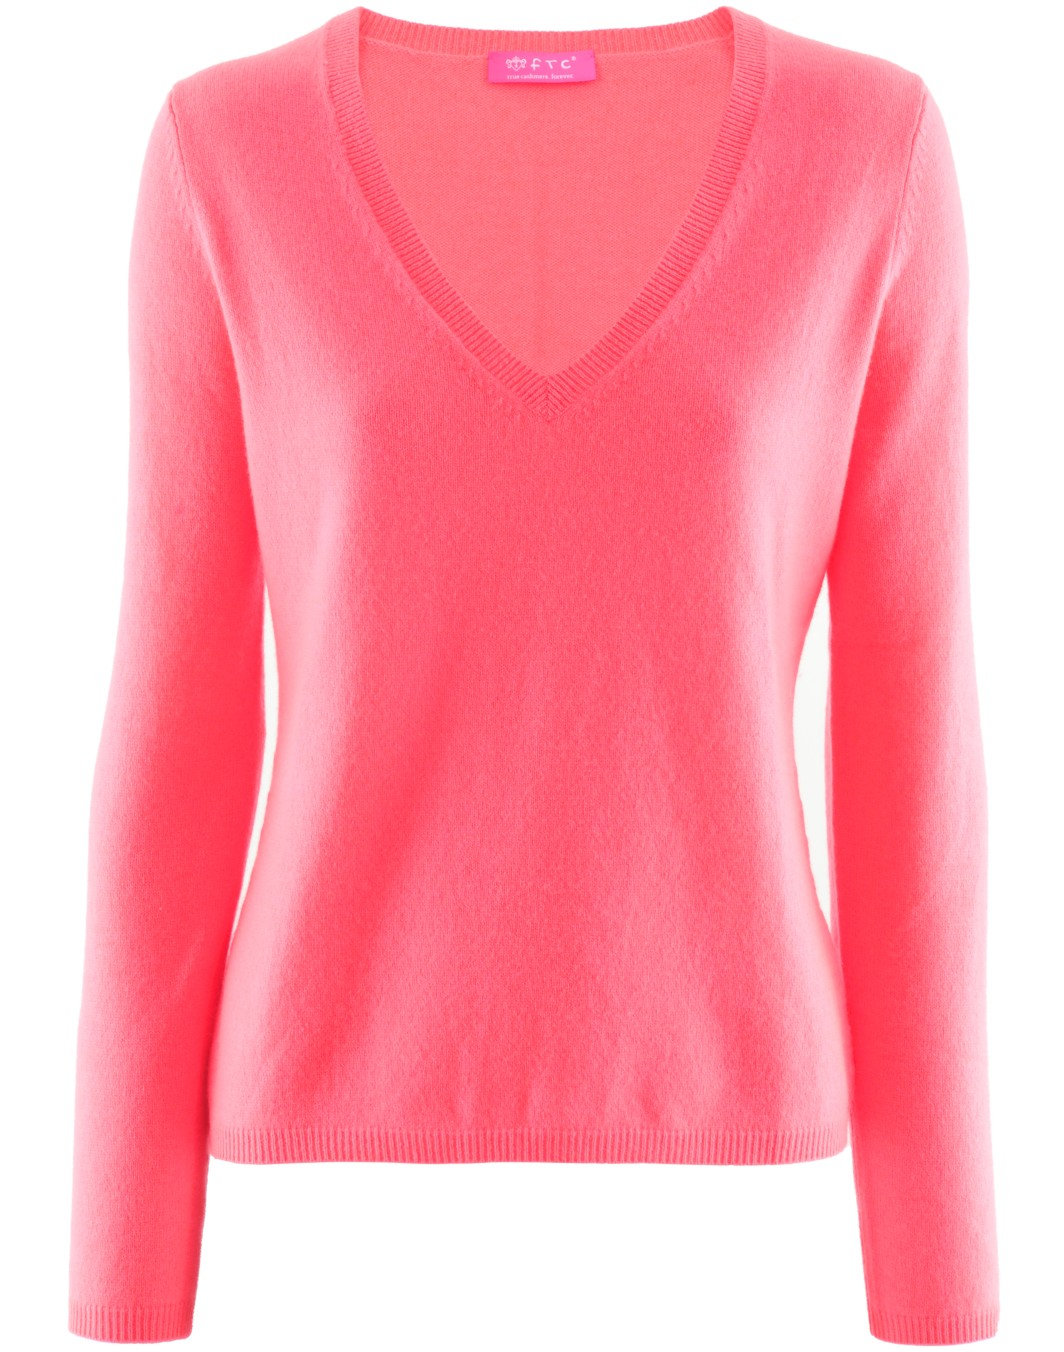 FTC-cashmere-pulli-pink